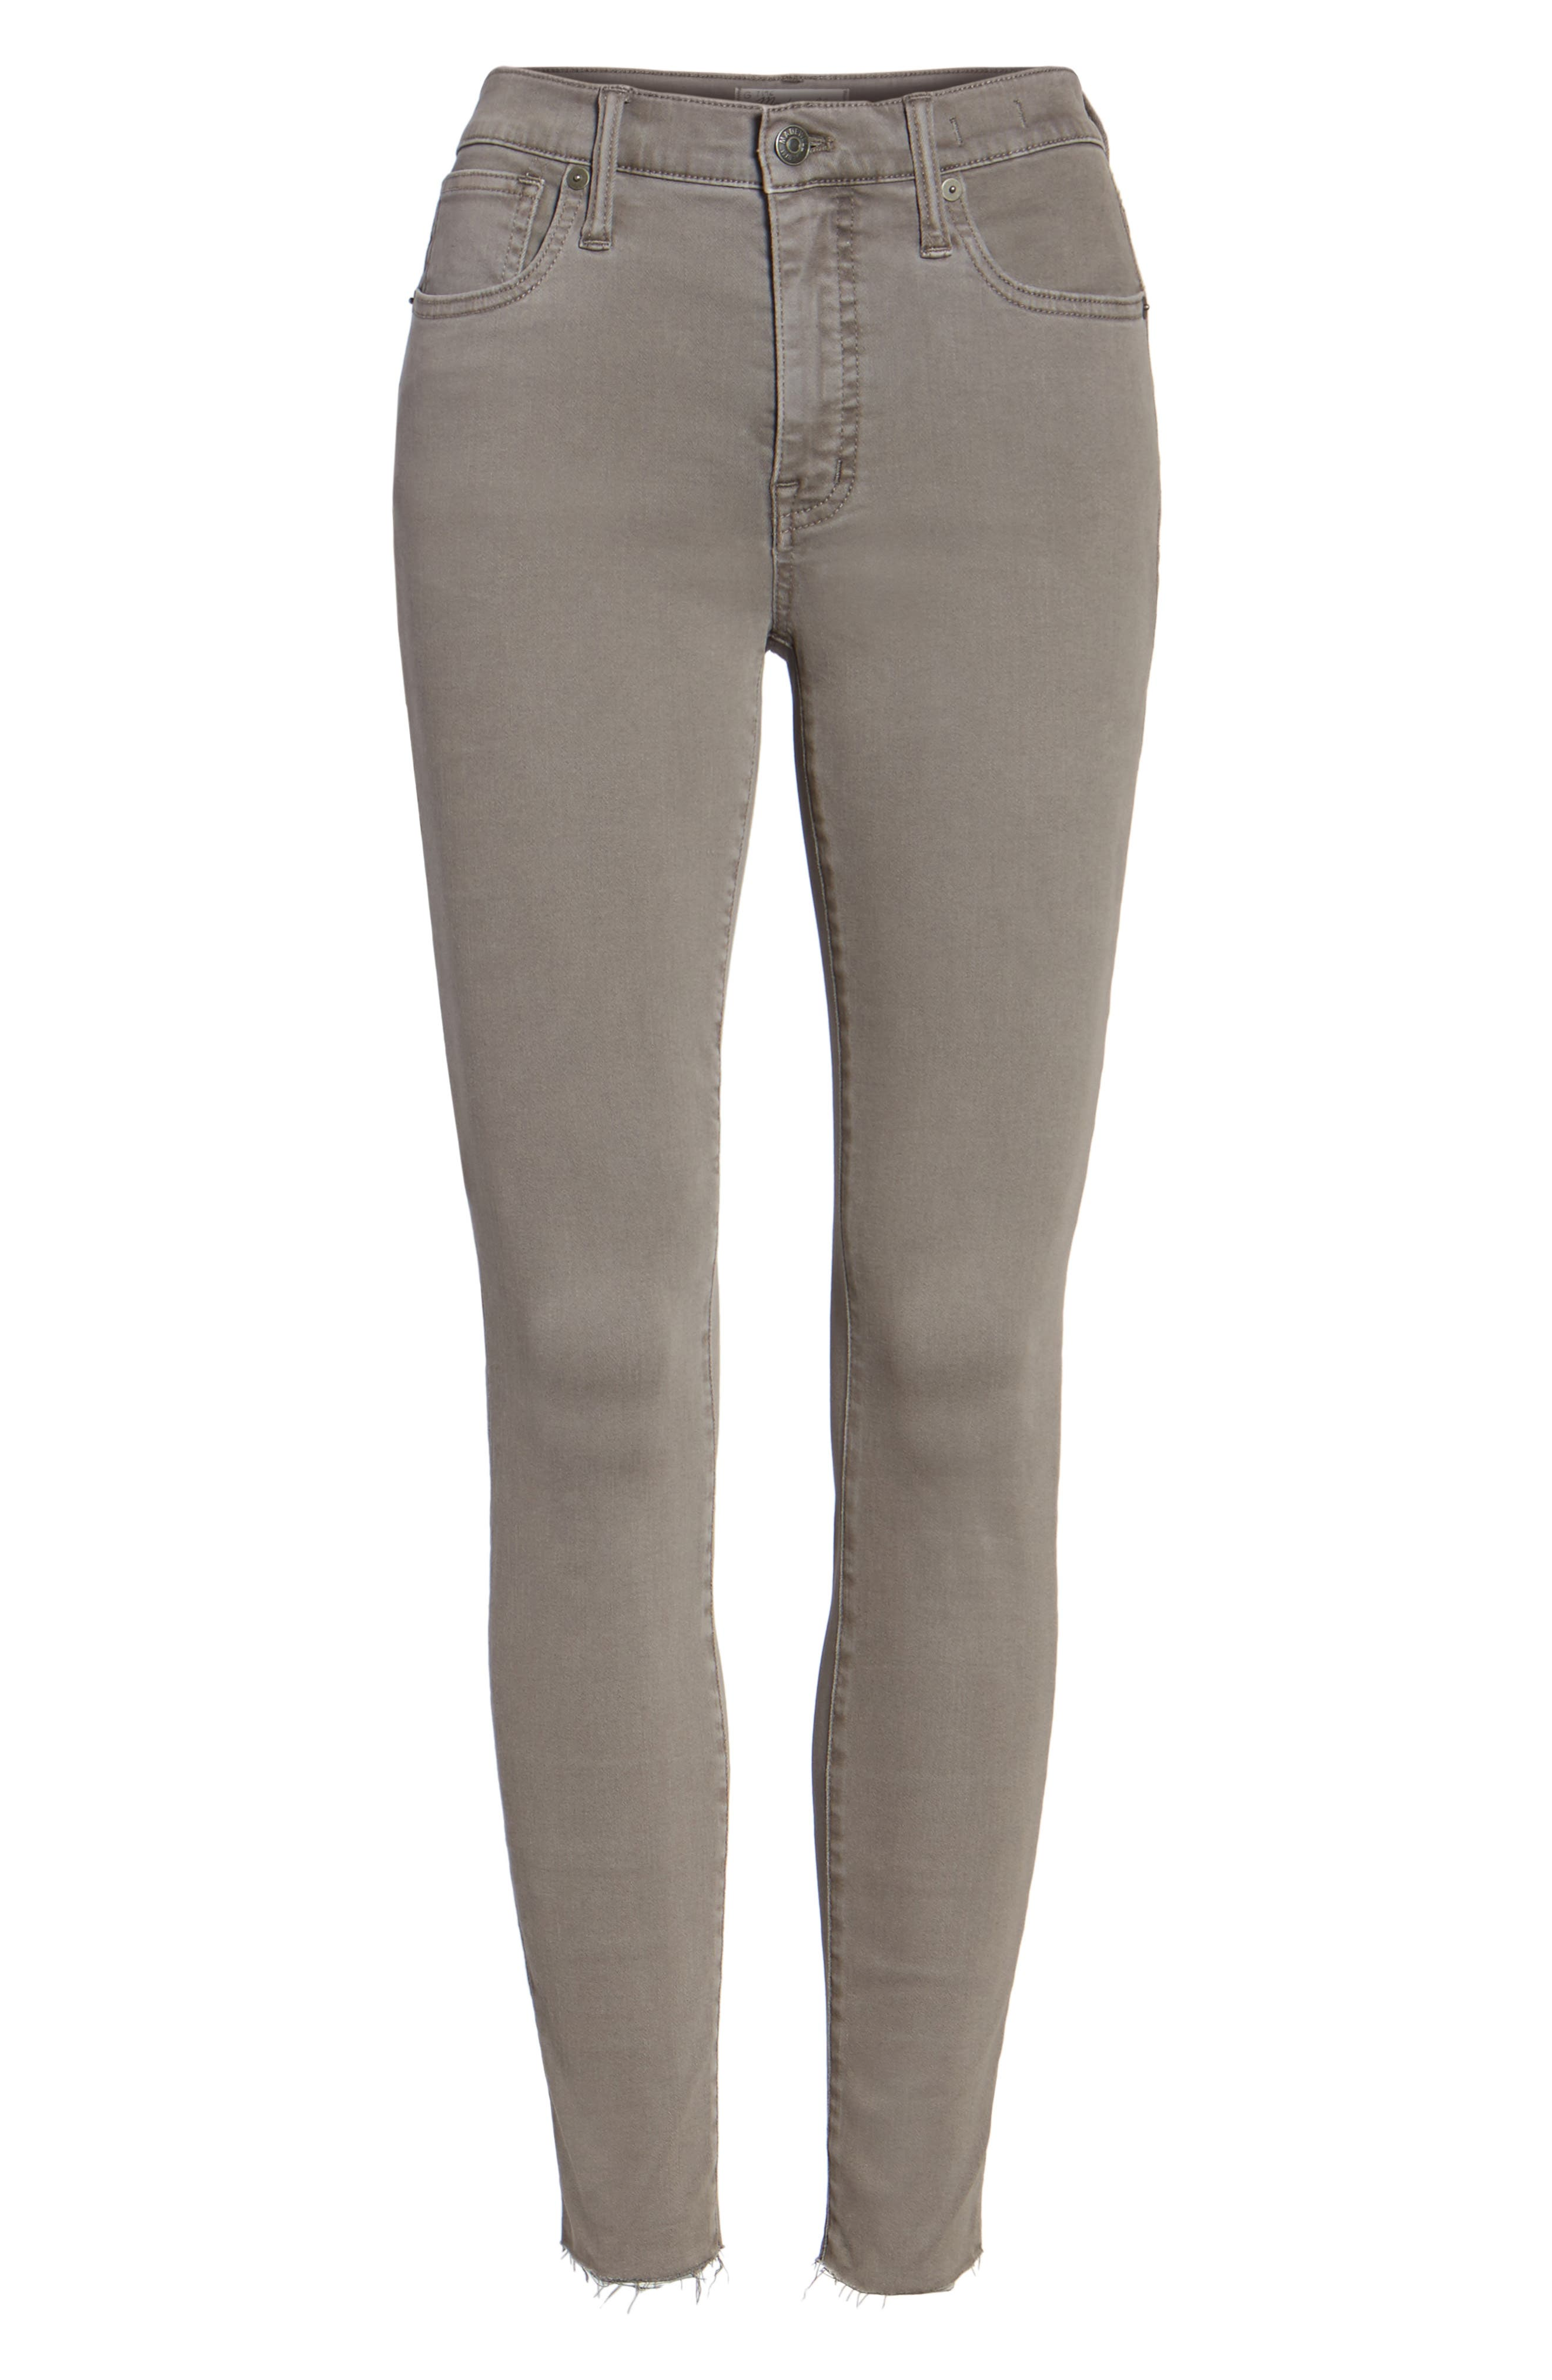 9-Inch High-Rise Skinny Jeans: Raw-Hem Garment-Dyed Edition,                             Alternate thumbnail 6, color,                             020